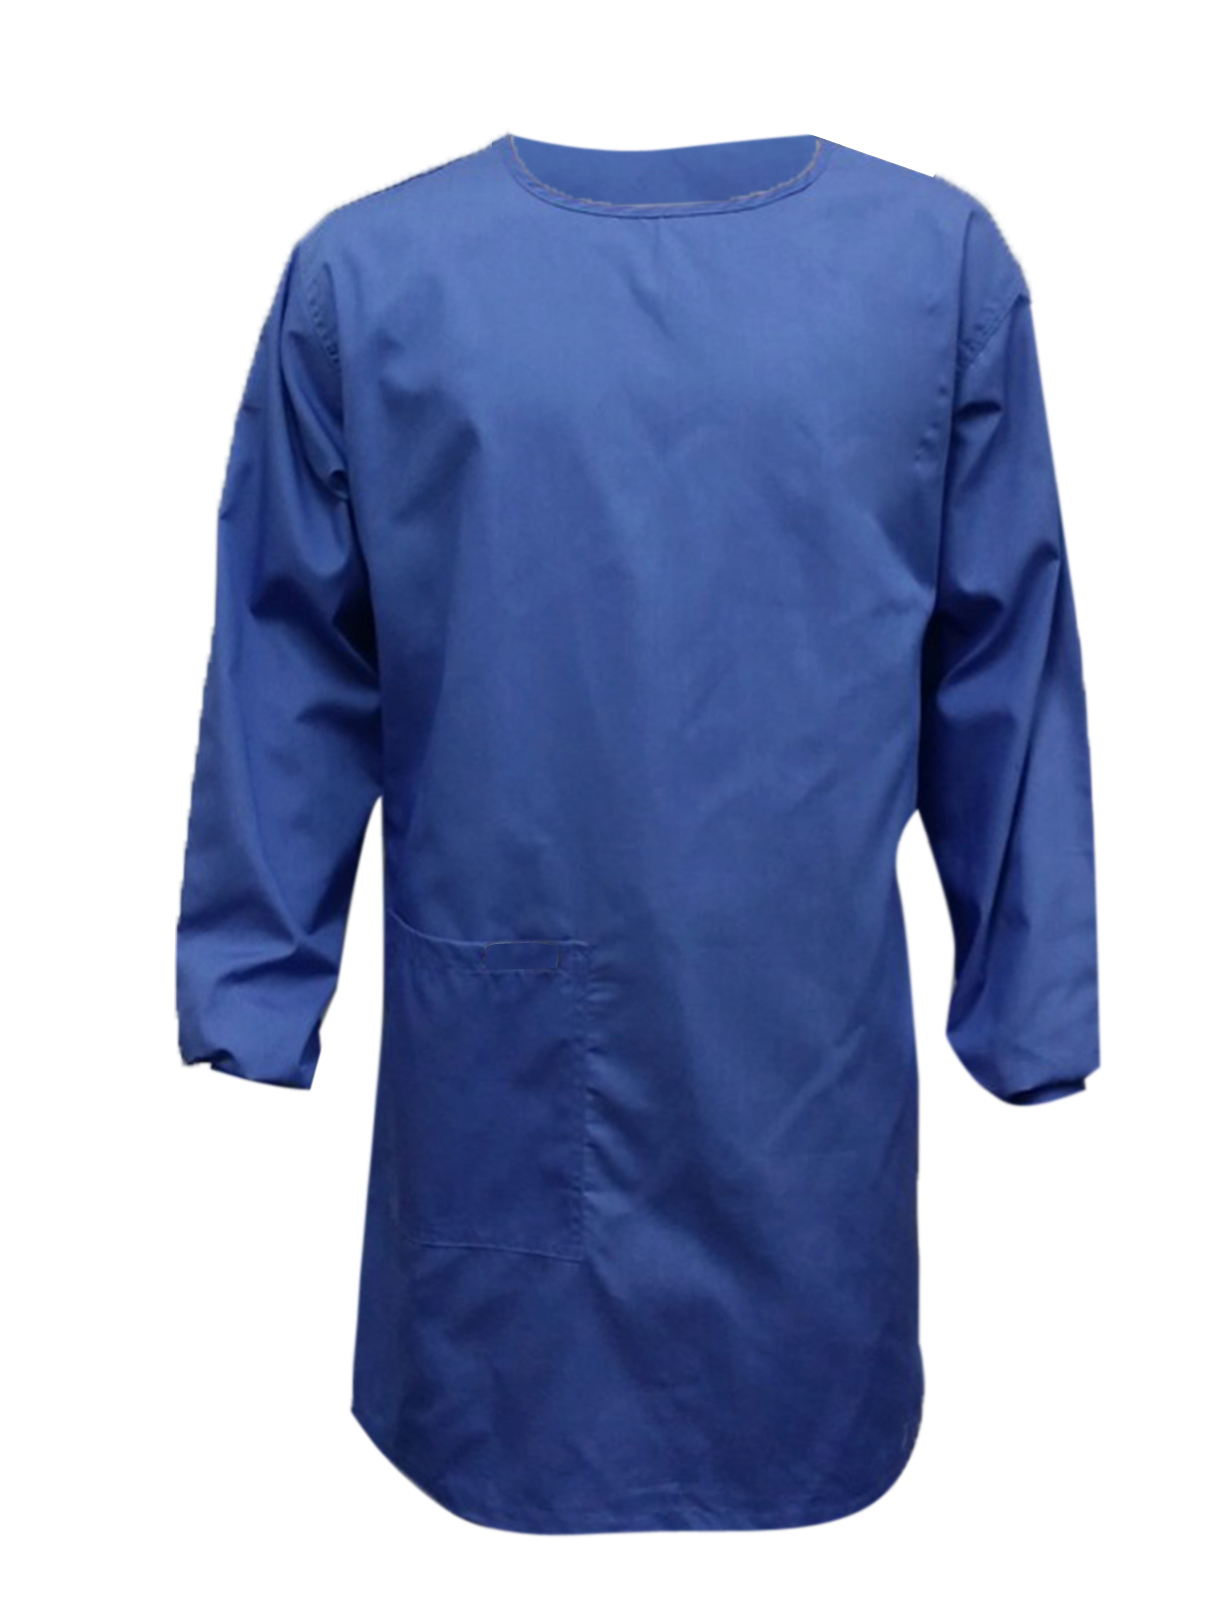 BKMDG001 – Customized Long Sleeve Medical Gown